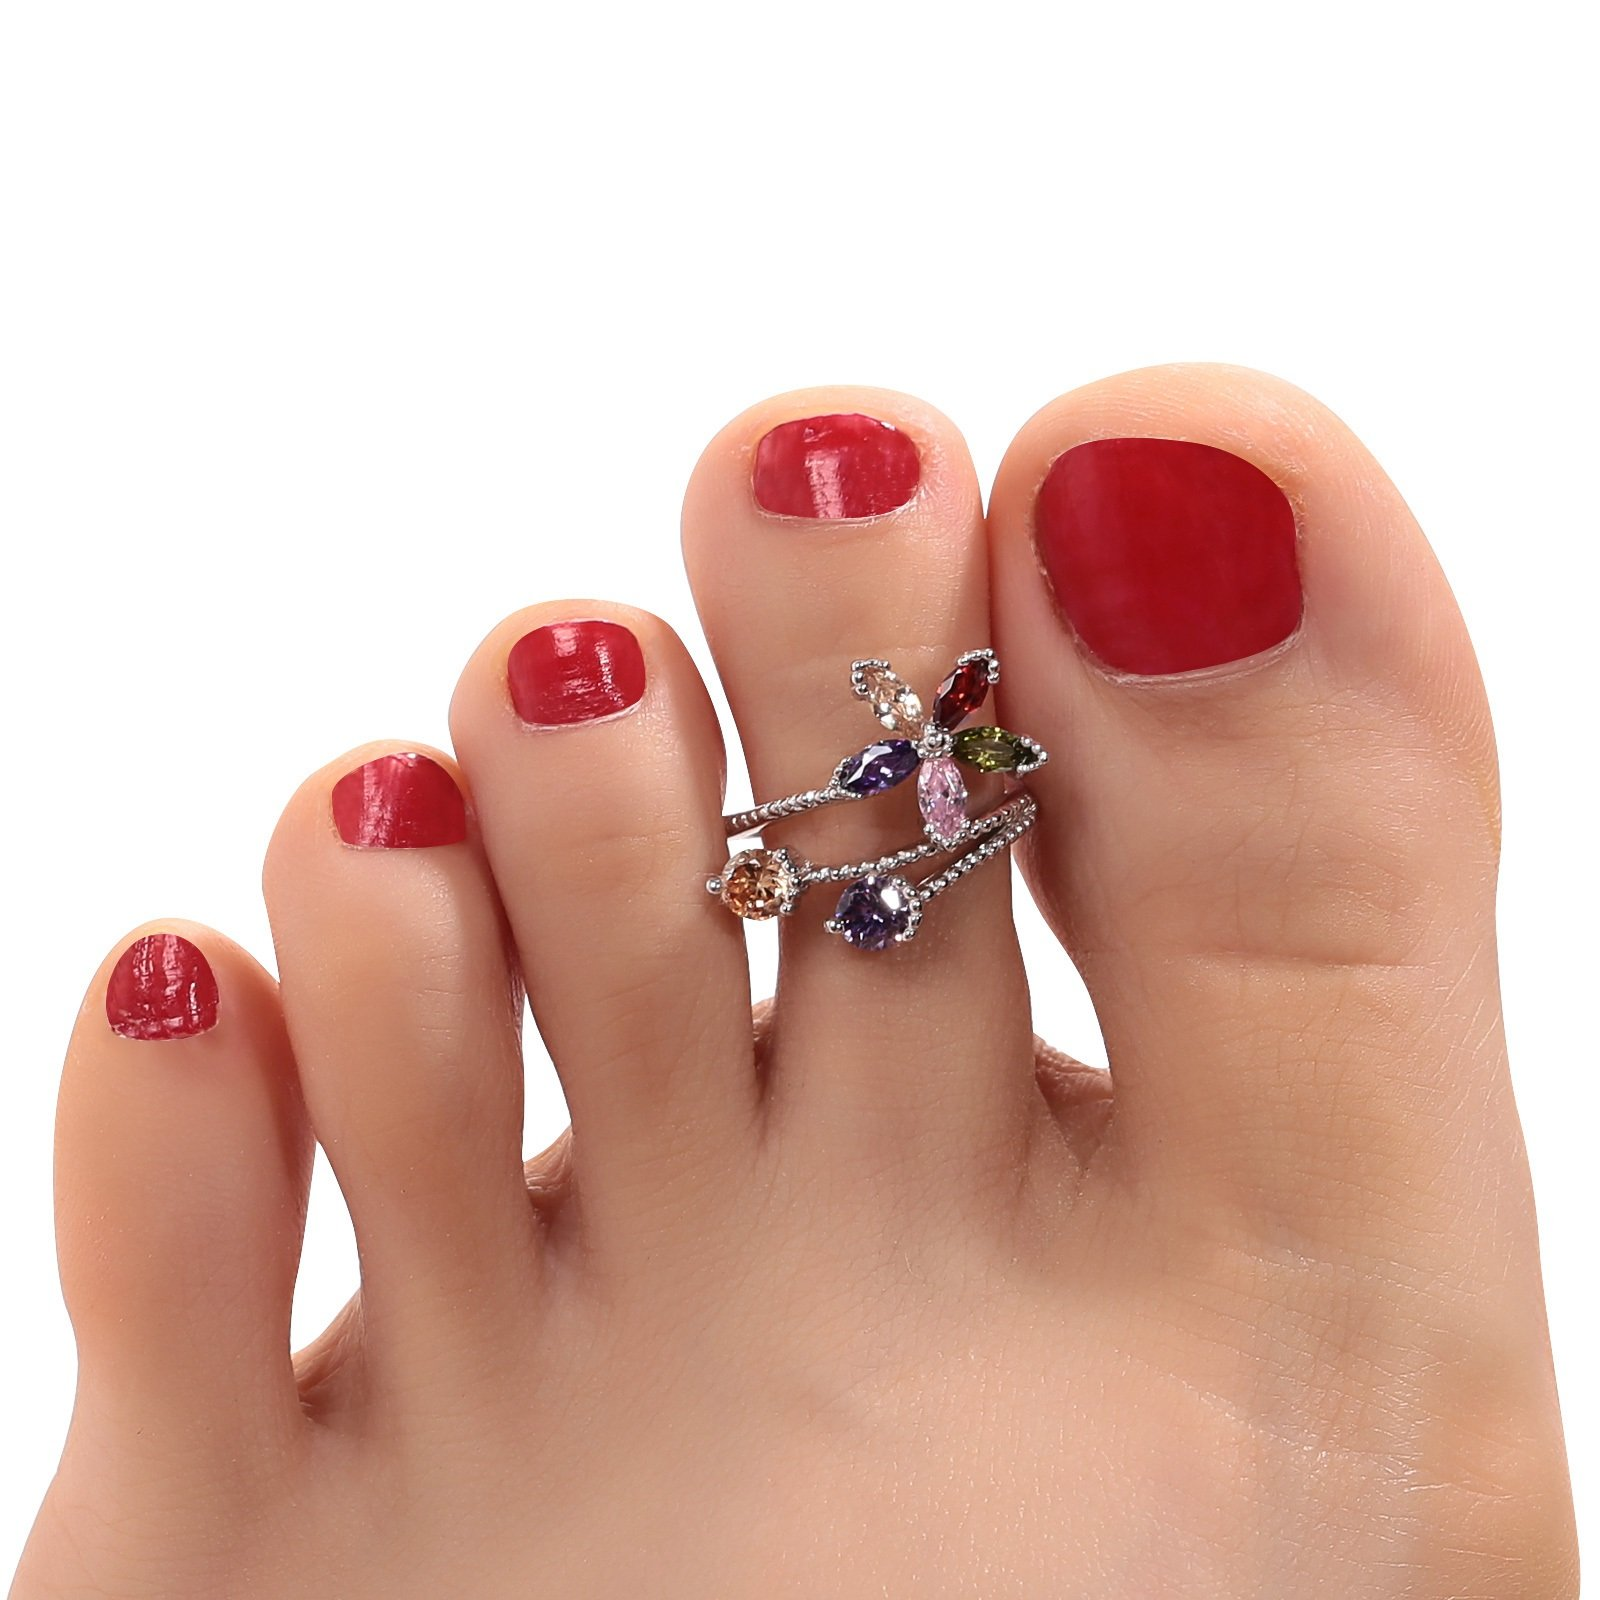 Aokarry 925 Sterling Silver Toe Rings For Women Girls Colorful Cubic Zirconia Open Flower Silver